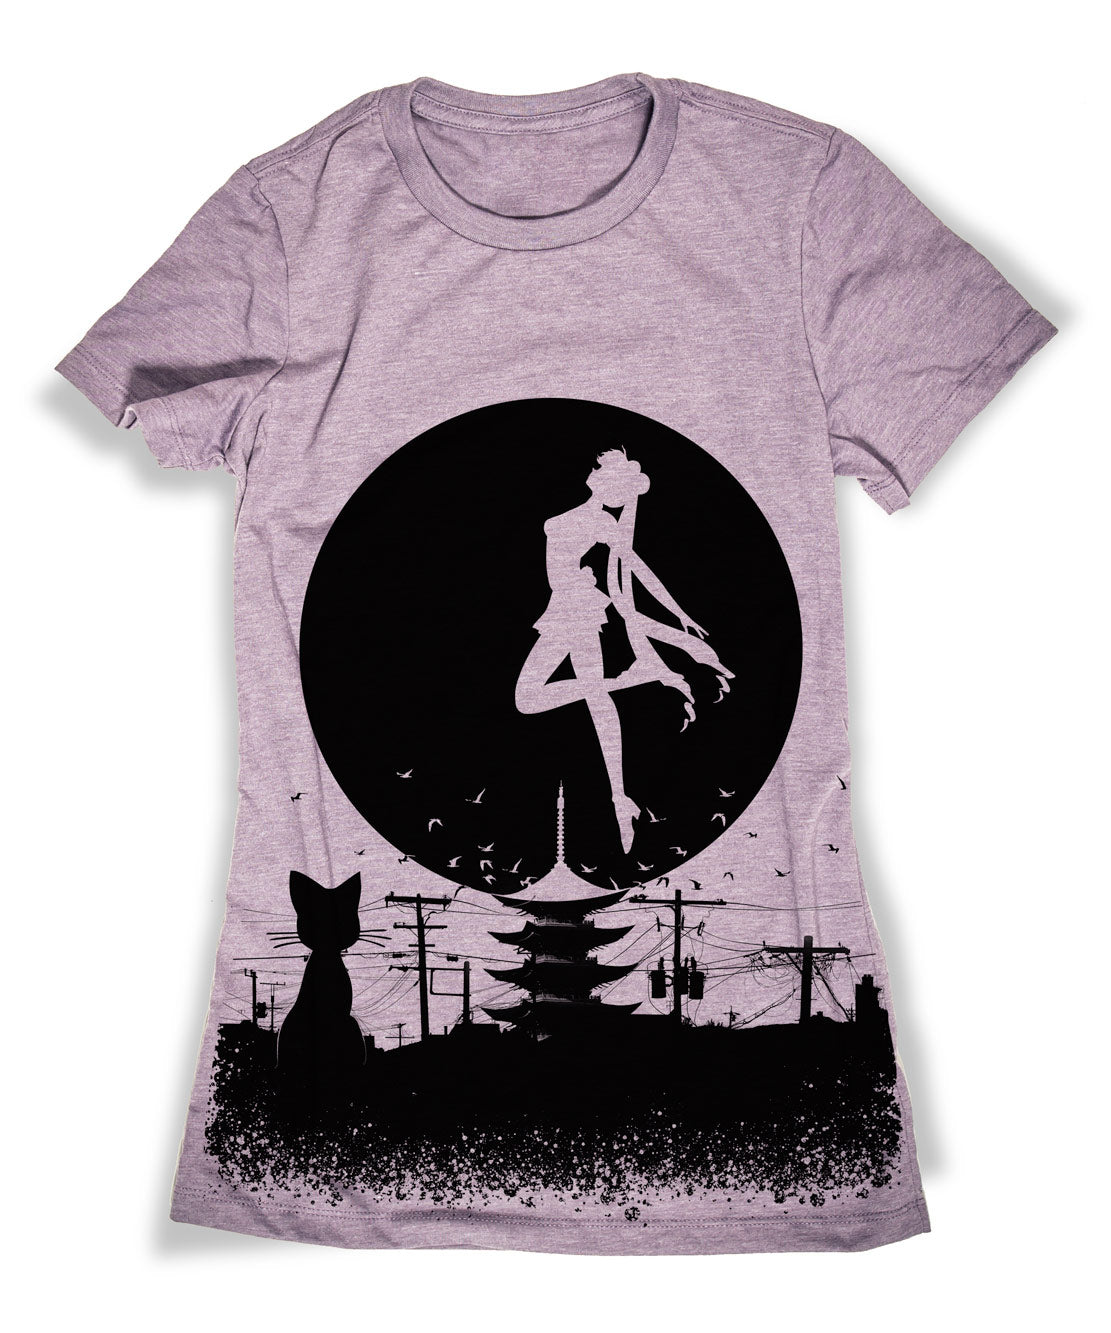 Luna Sailor Moon T-Shirt